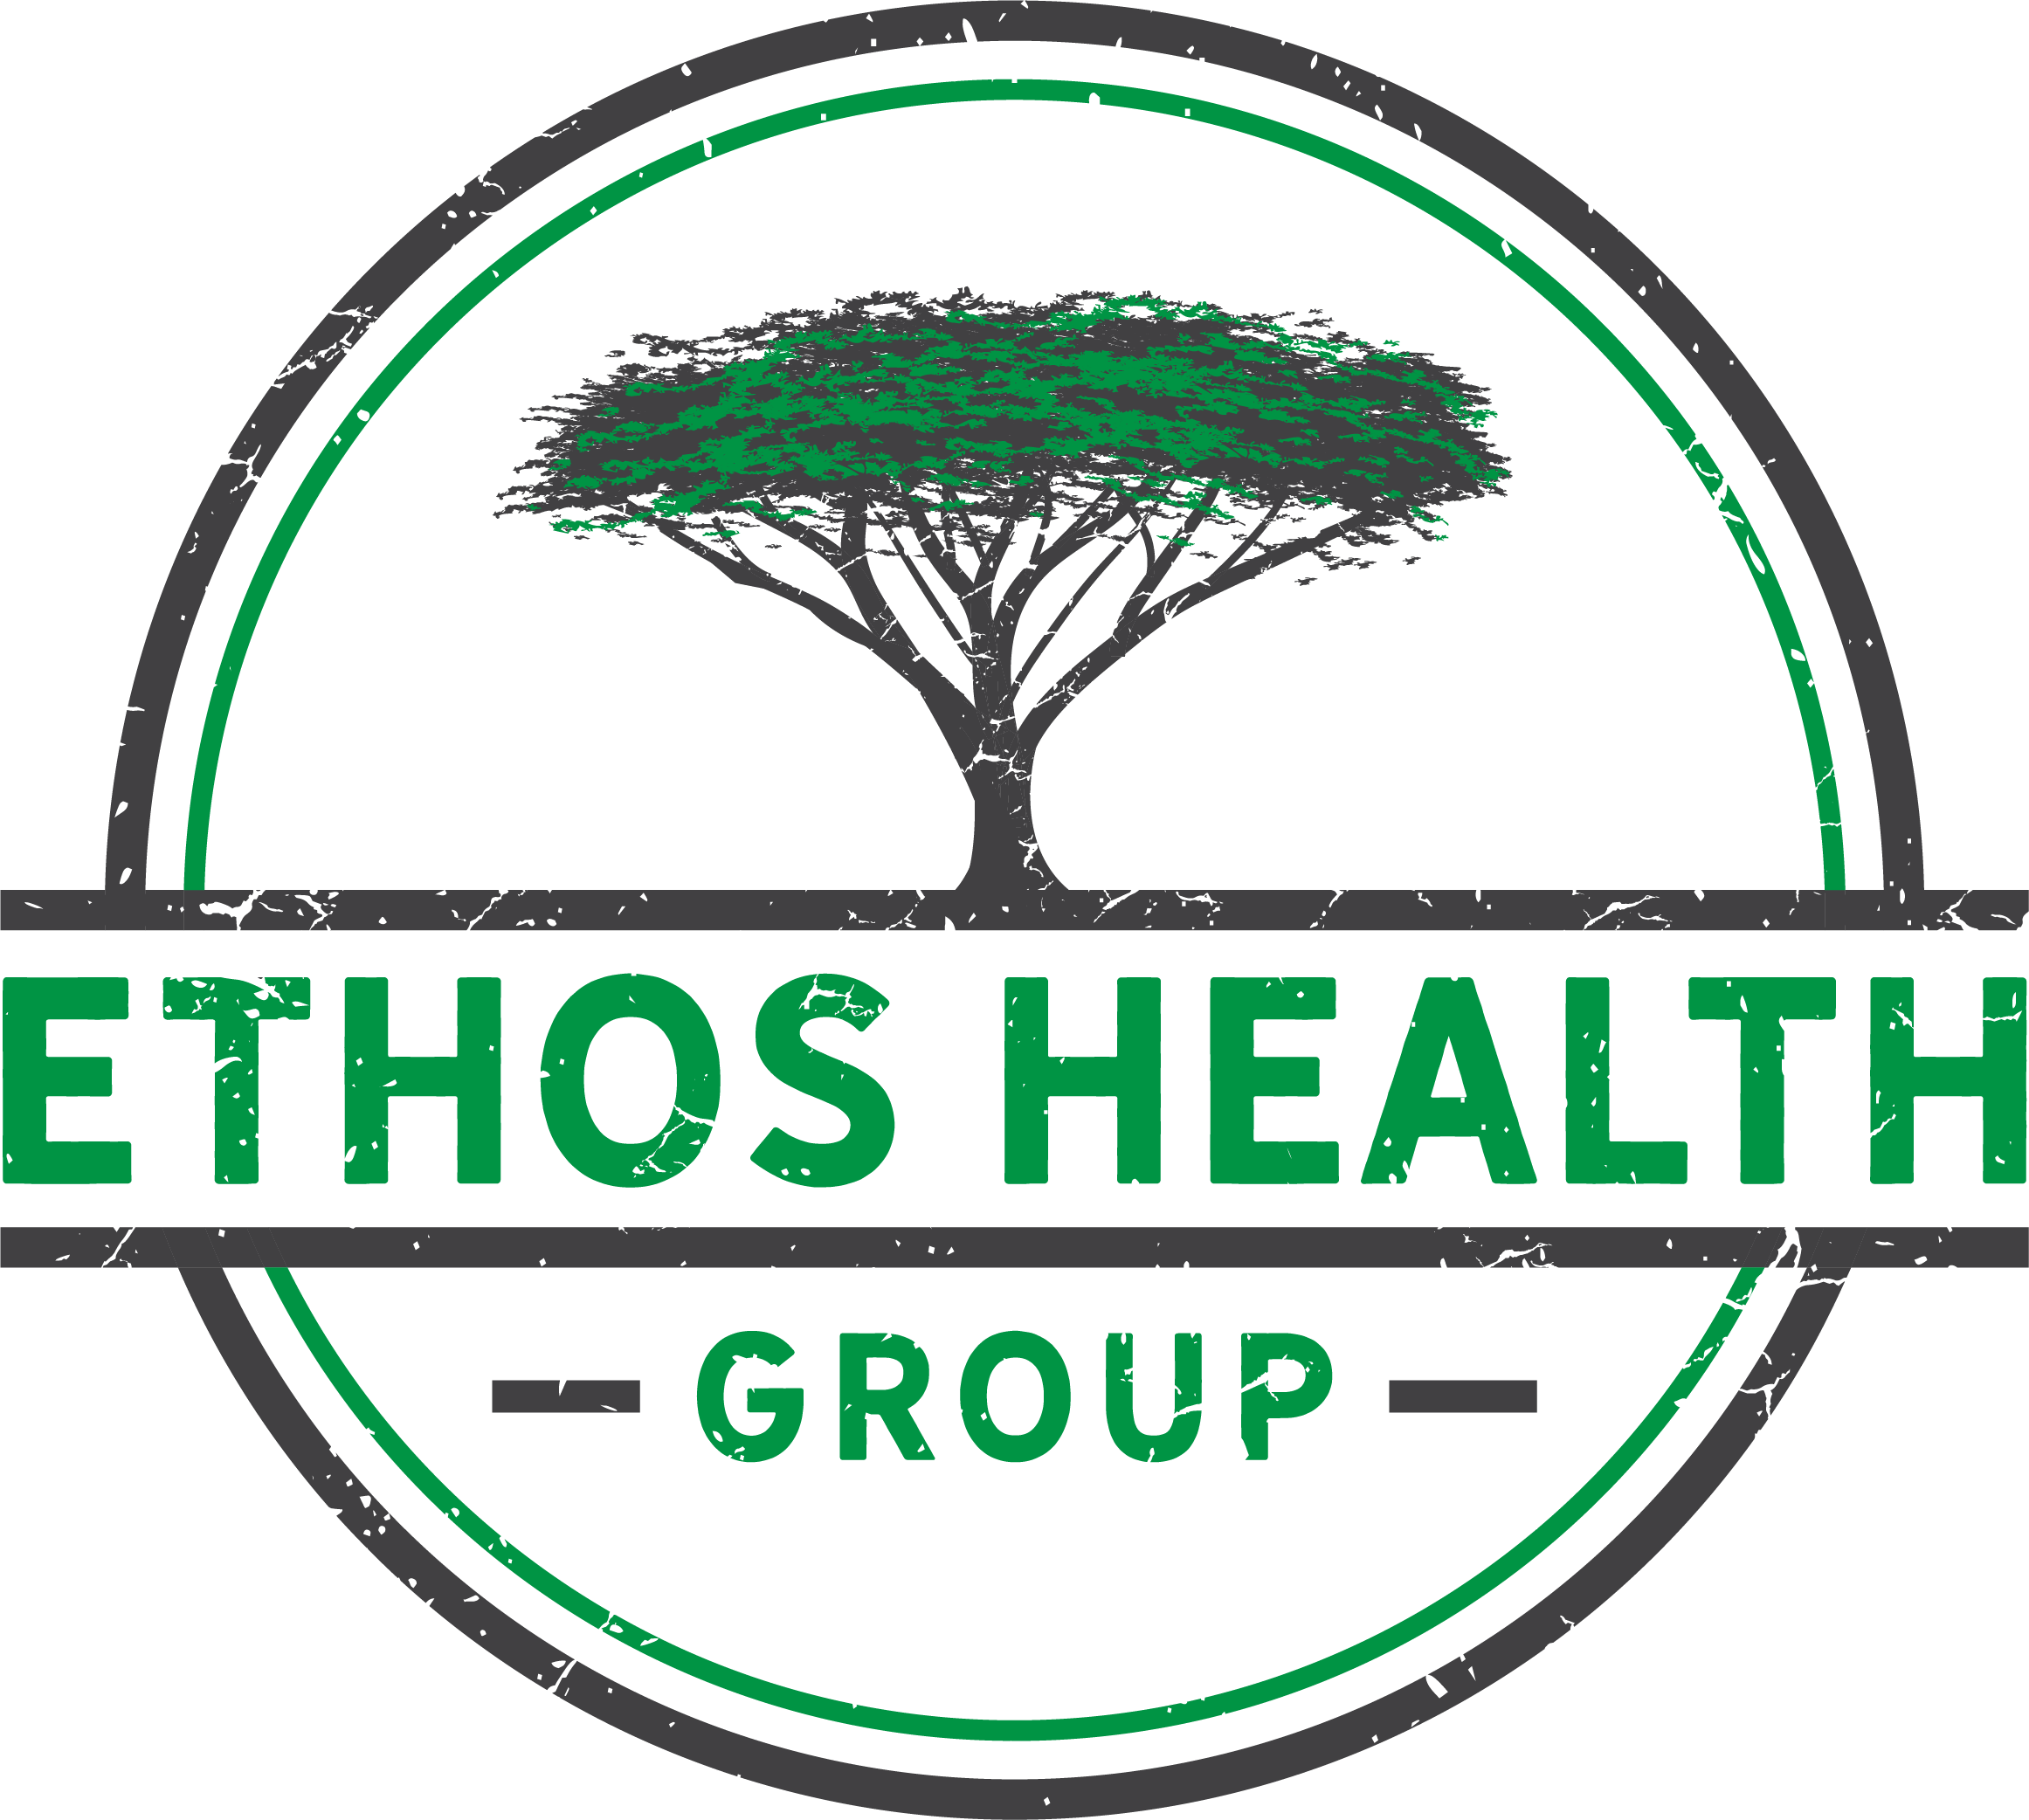 Ethos Health Group, (1)